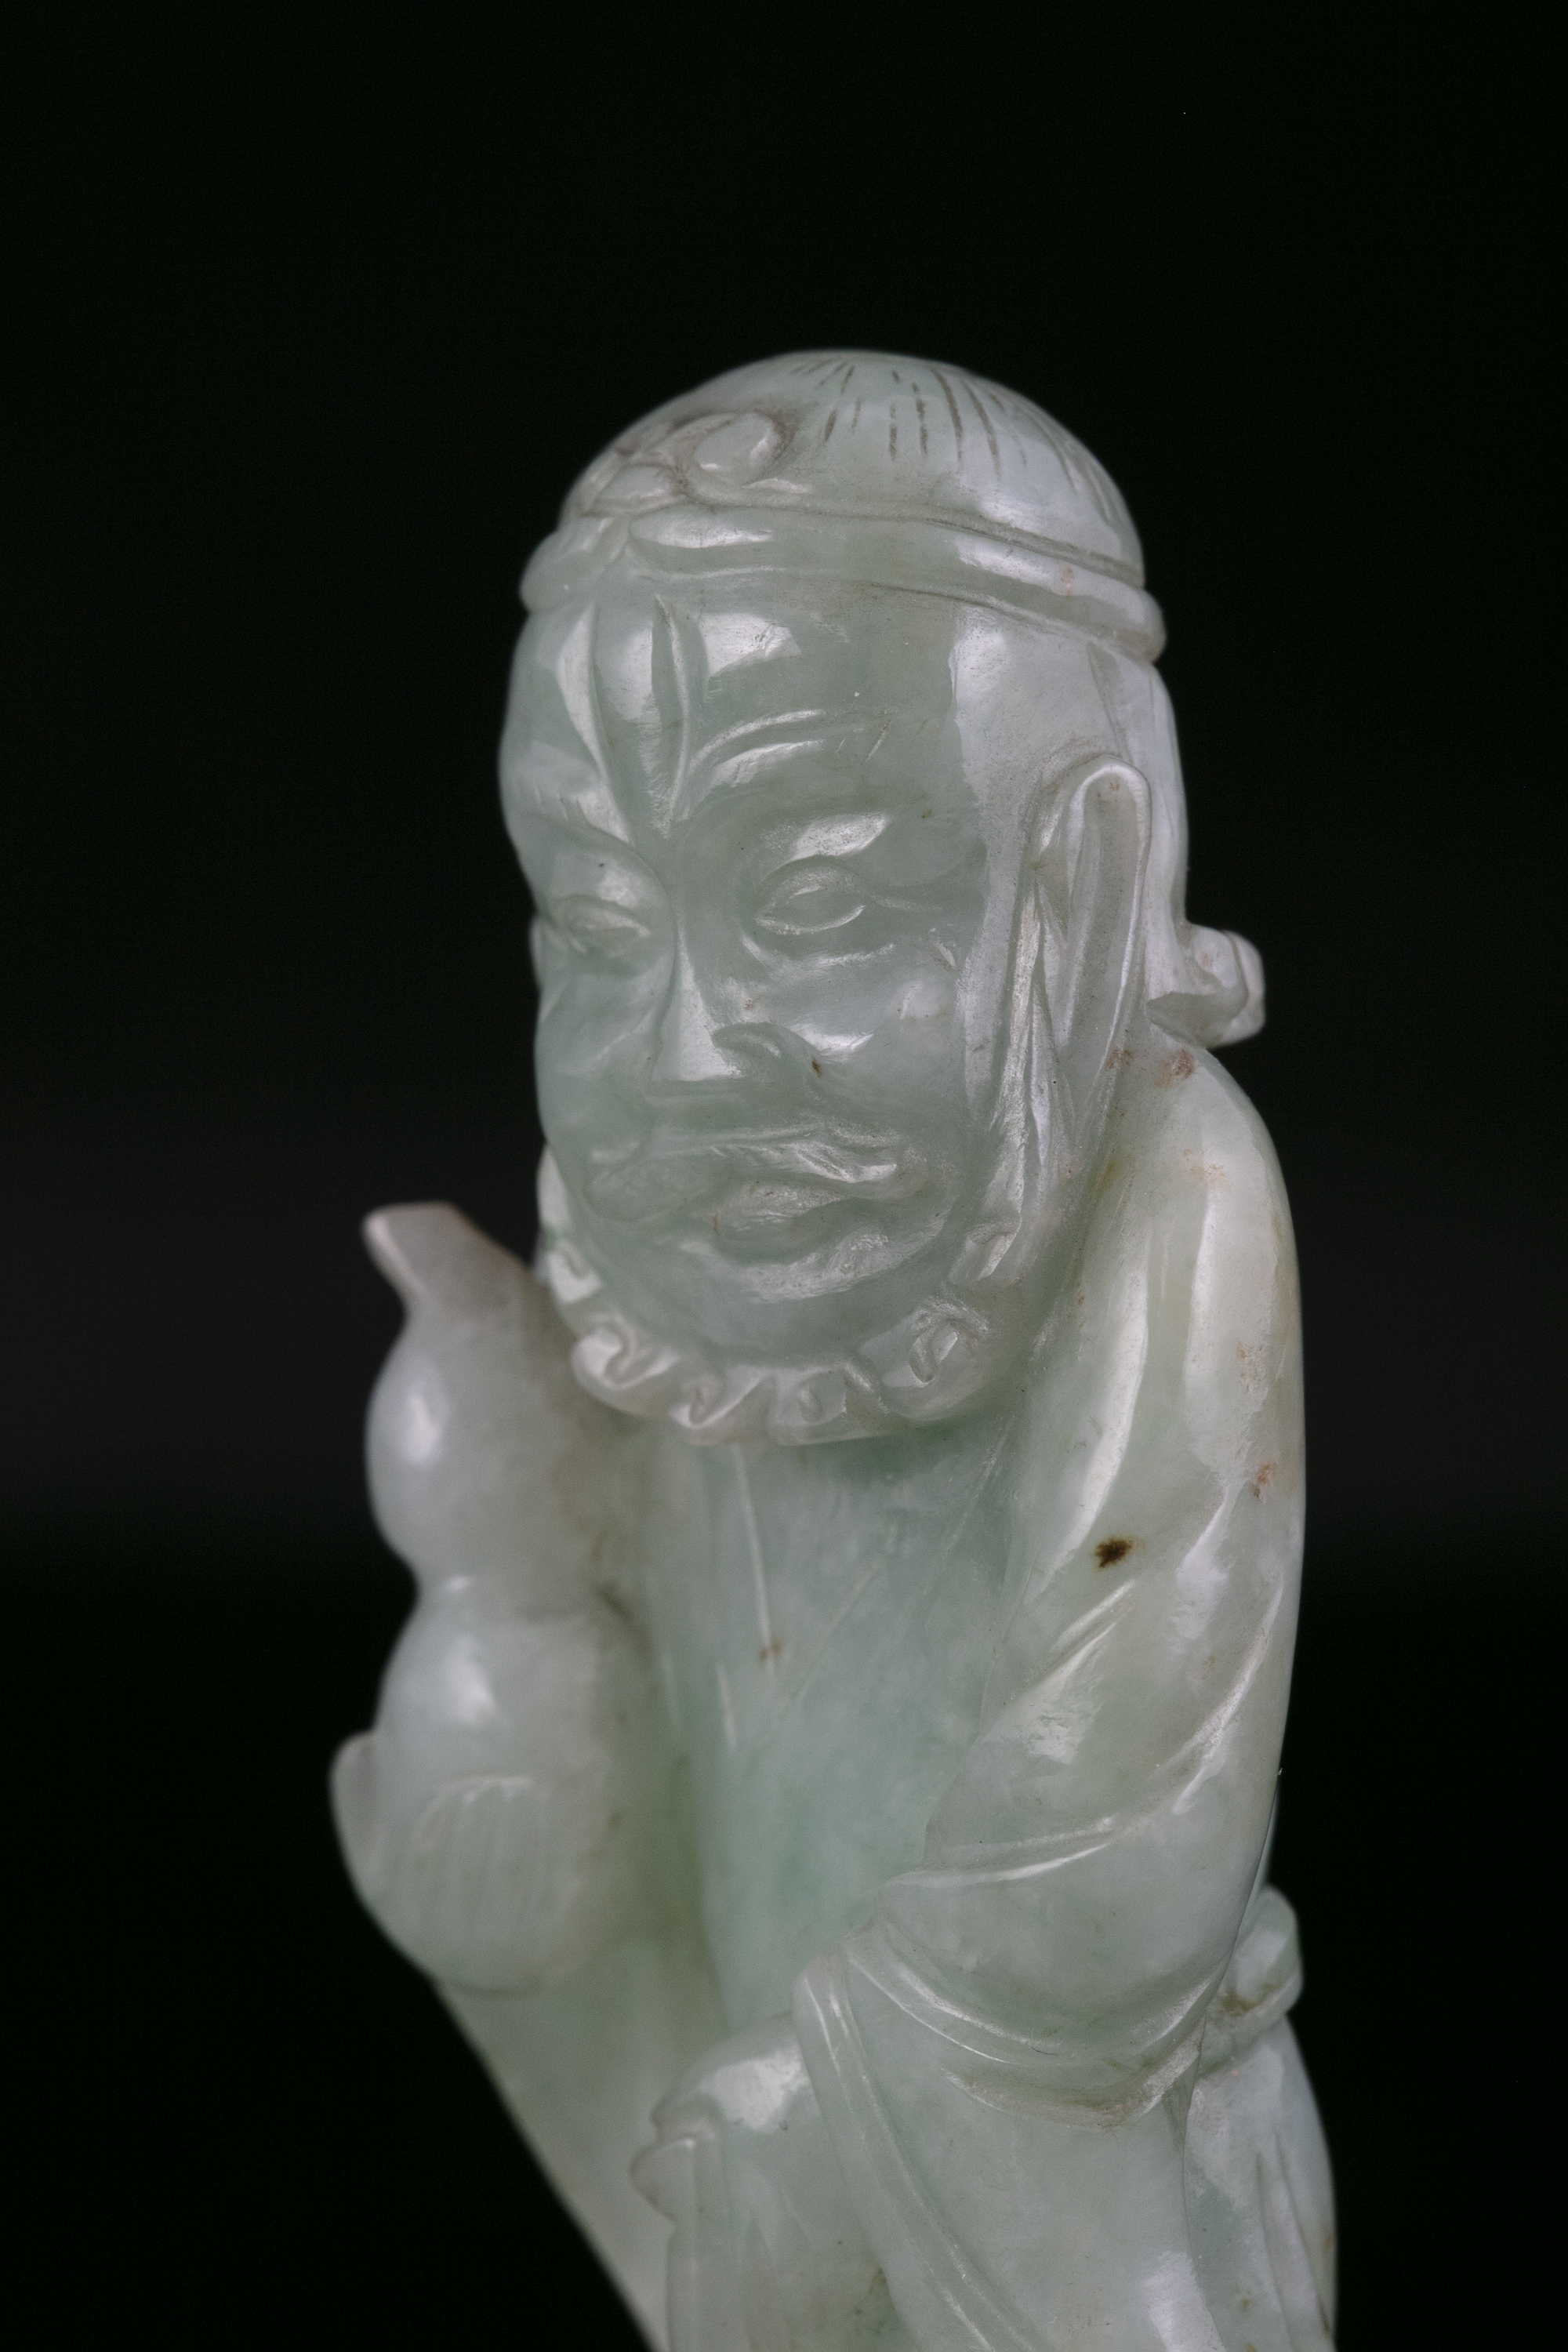 A JADEITE JADE FIGURE OF A STANDING TIEGUAI LI China, Circa 1900 The immortal is depicted with a - Image 7 of 20